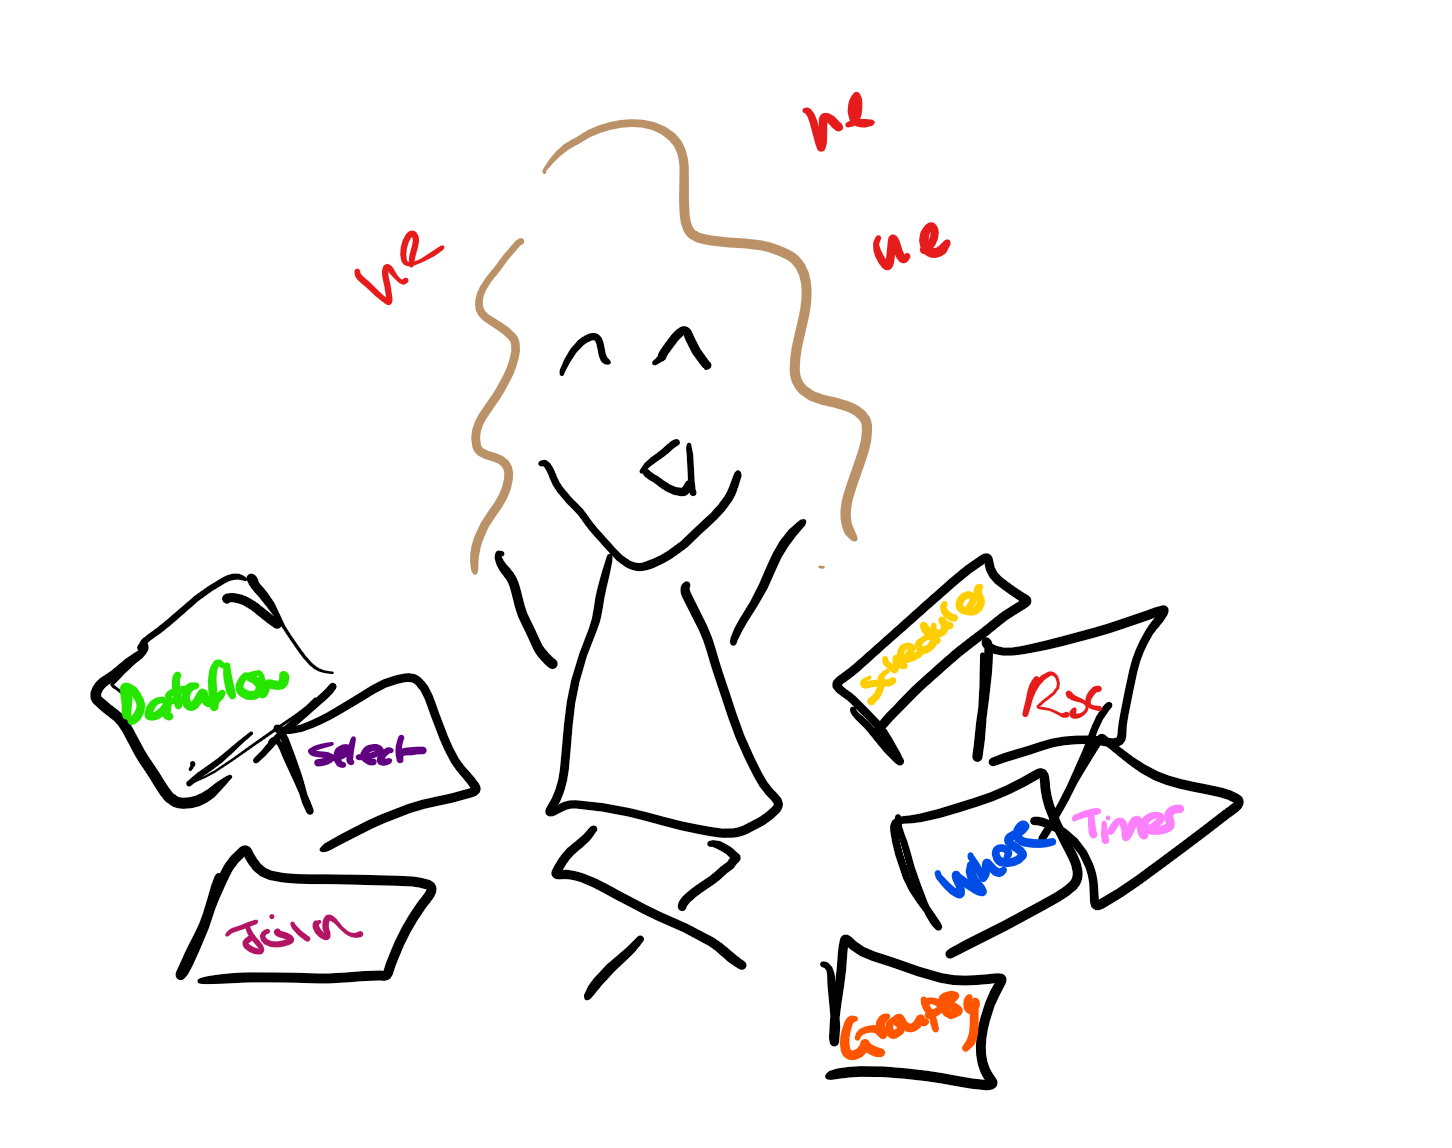 Doodle of author surrounded by Rx notes.